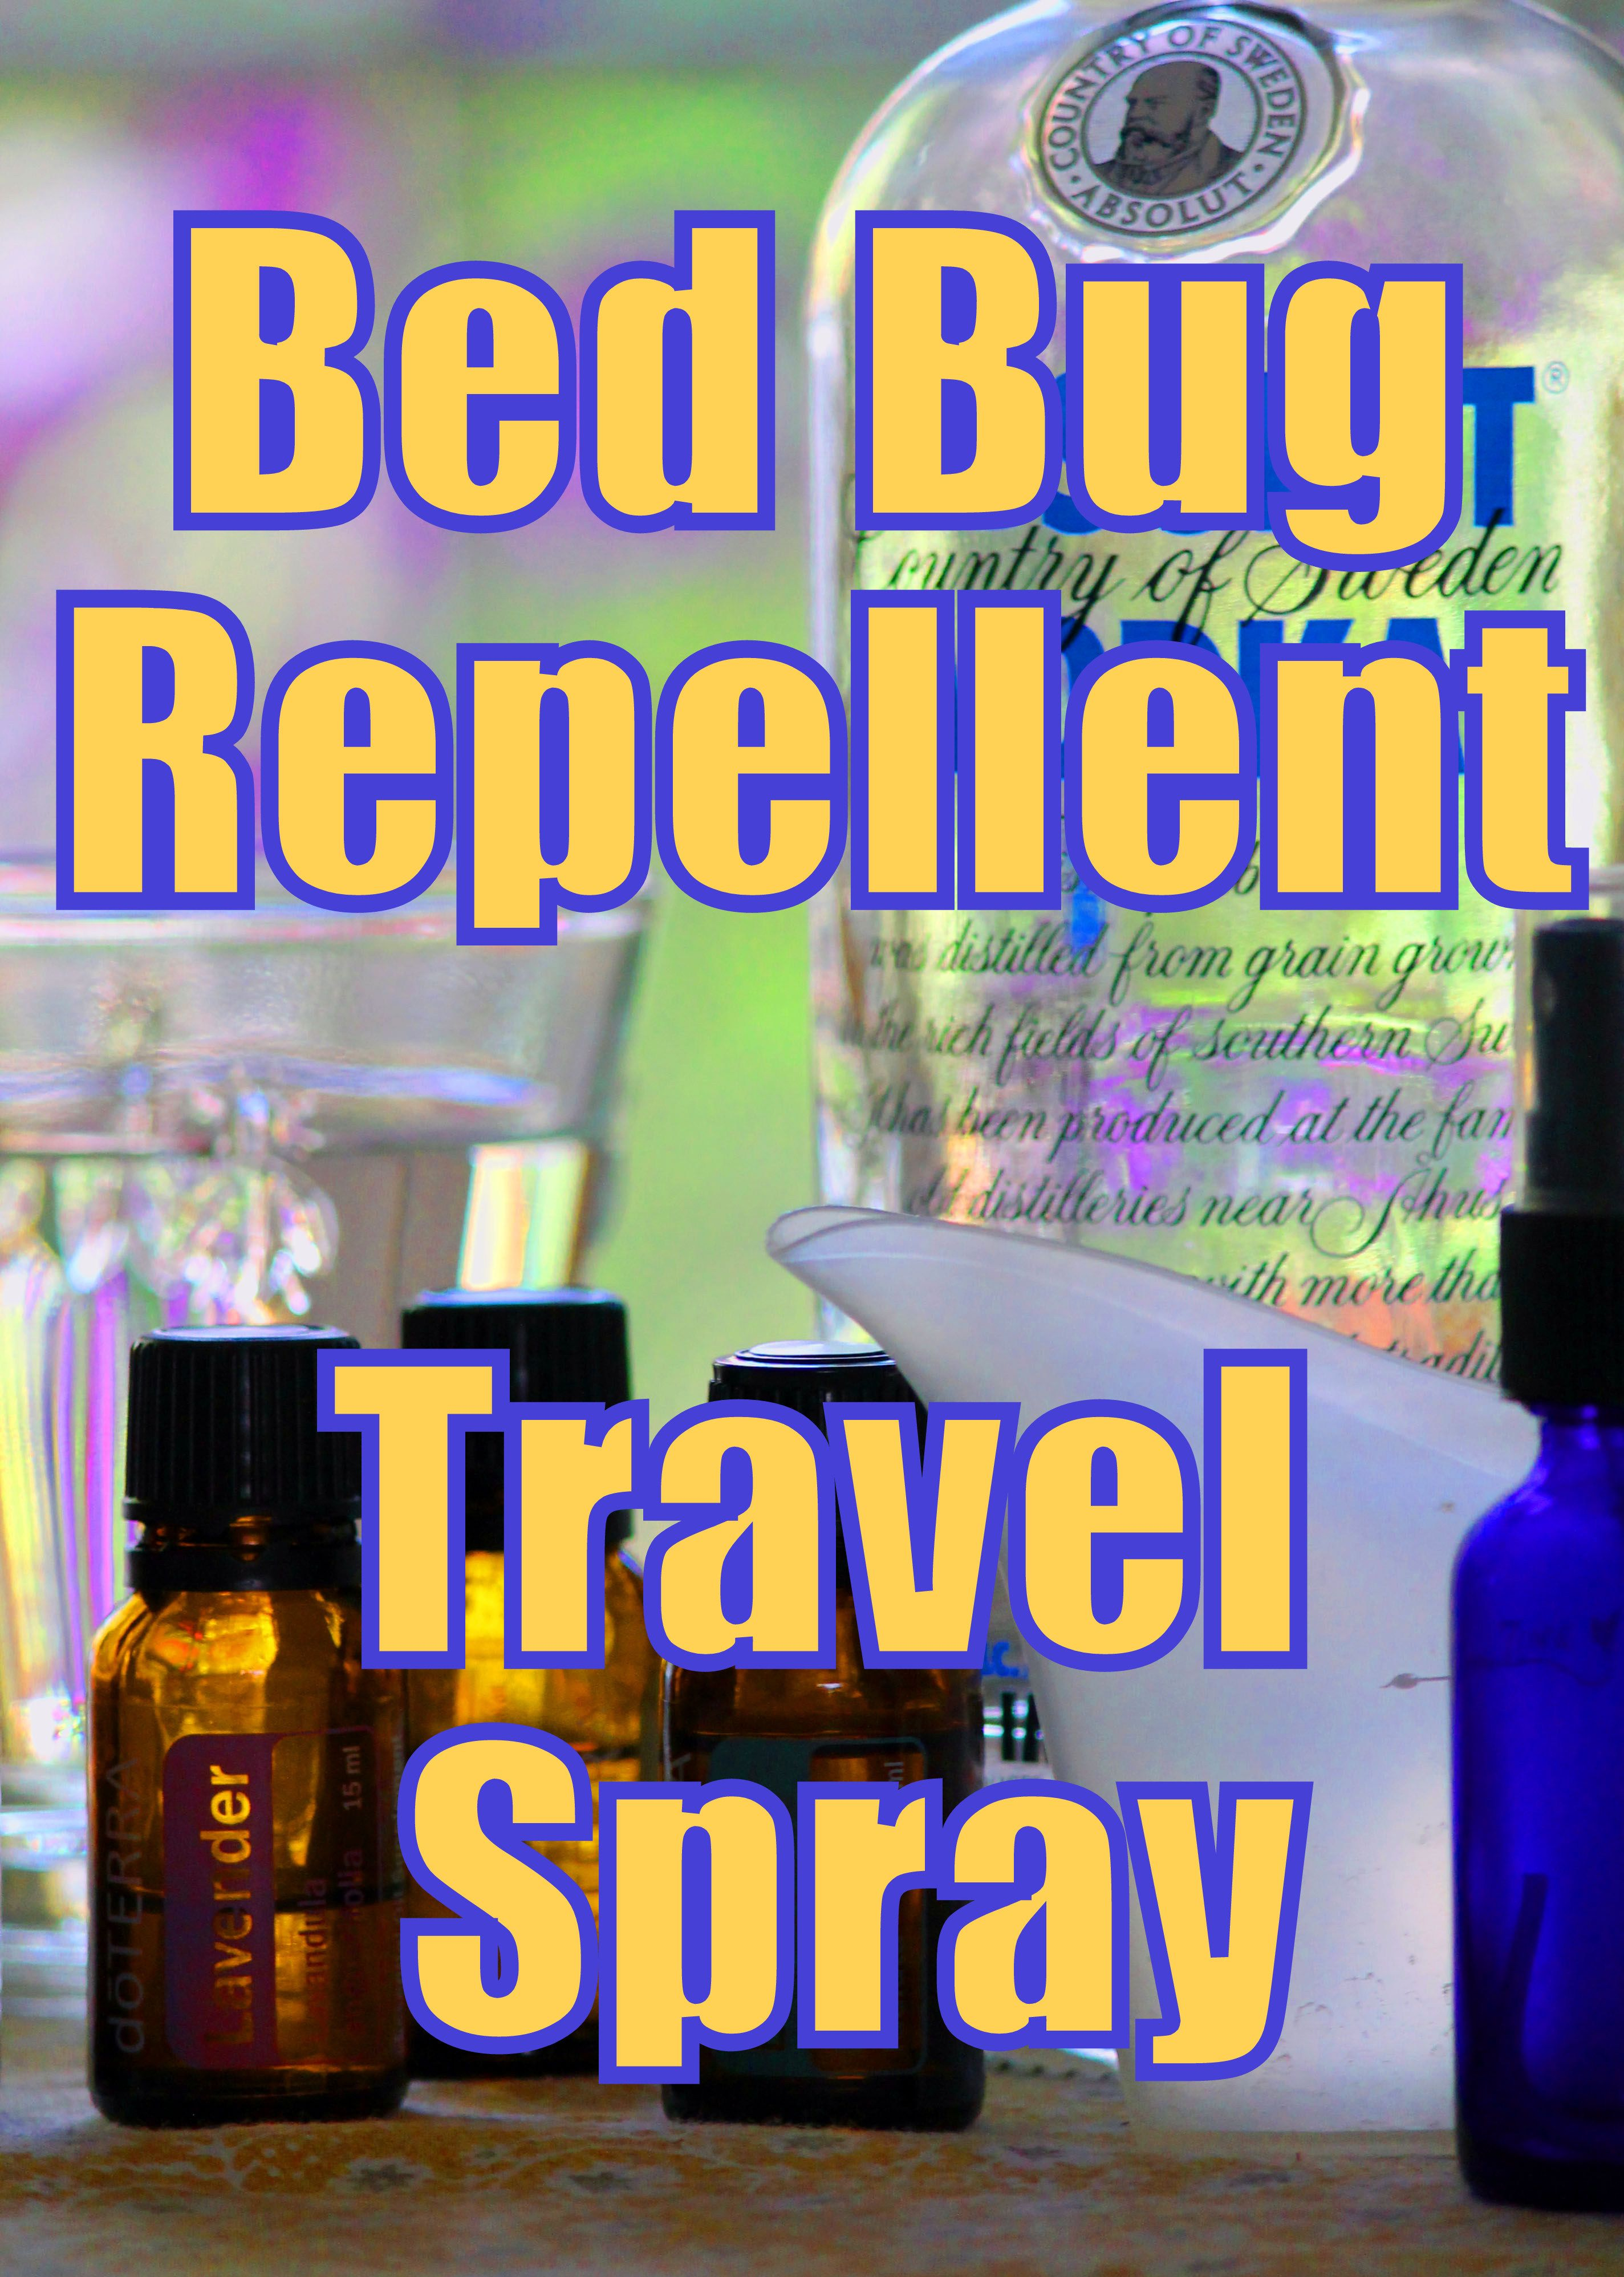 Sprays For Bed Bugs Bed Bug Repellent Travel Spray Keep Bed Bugs At Bay Naturally